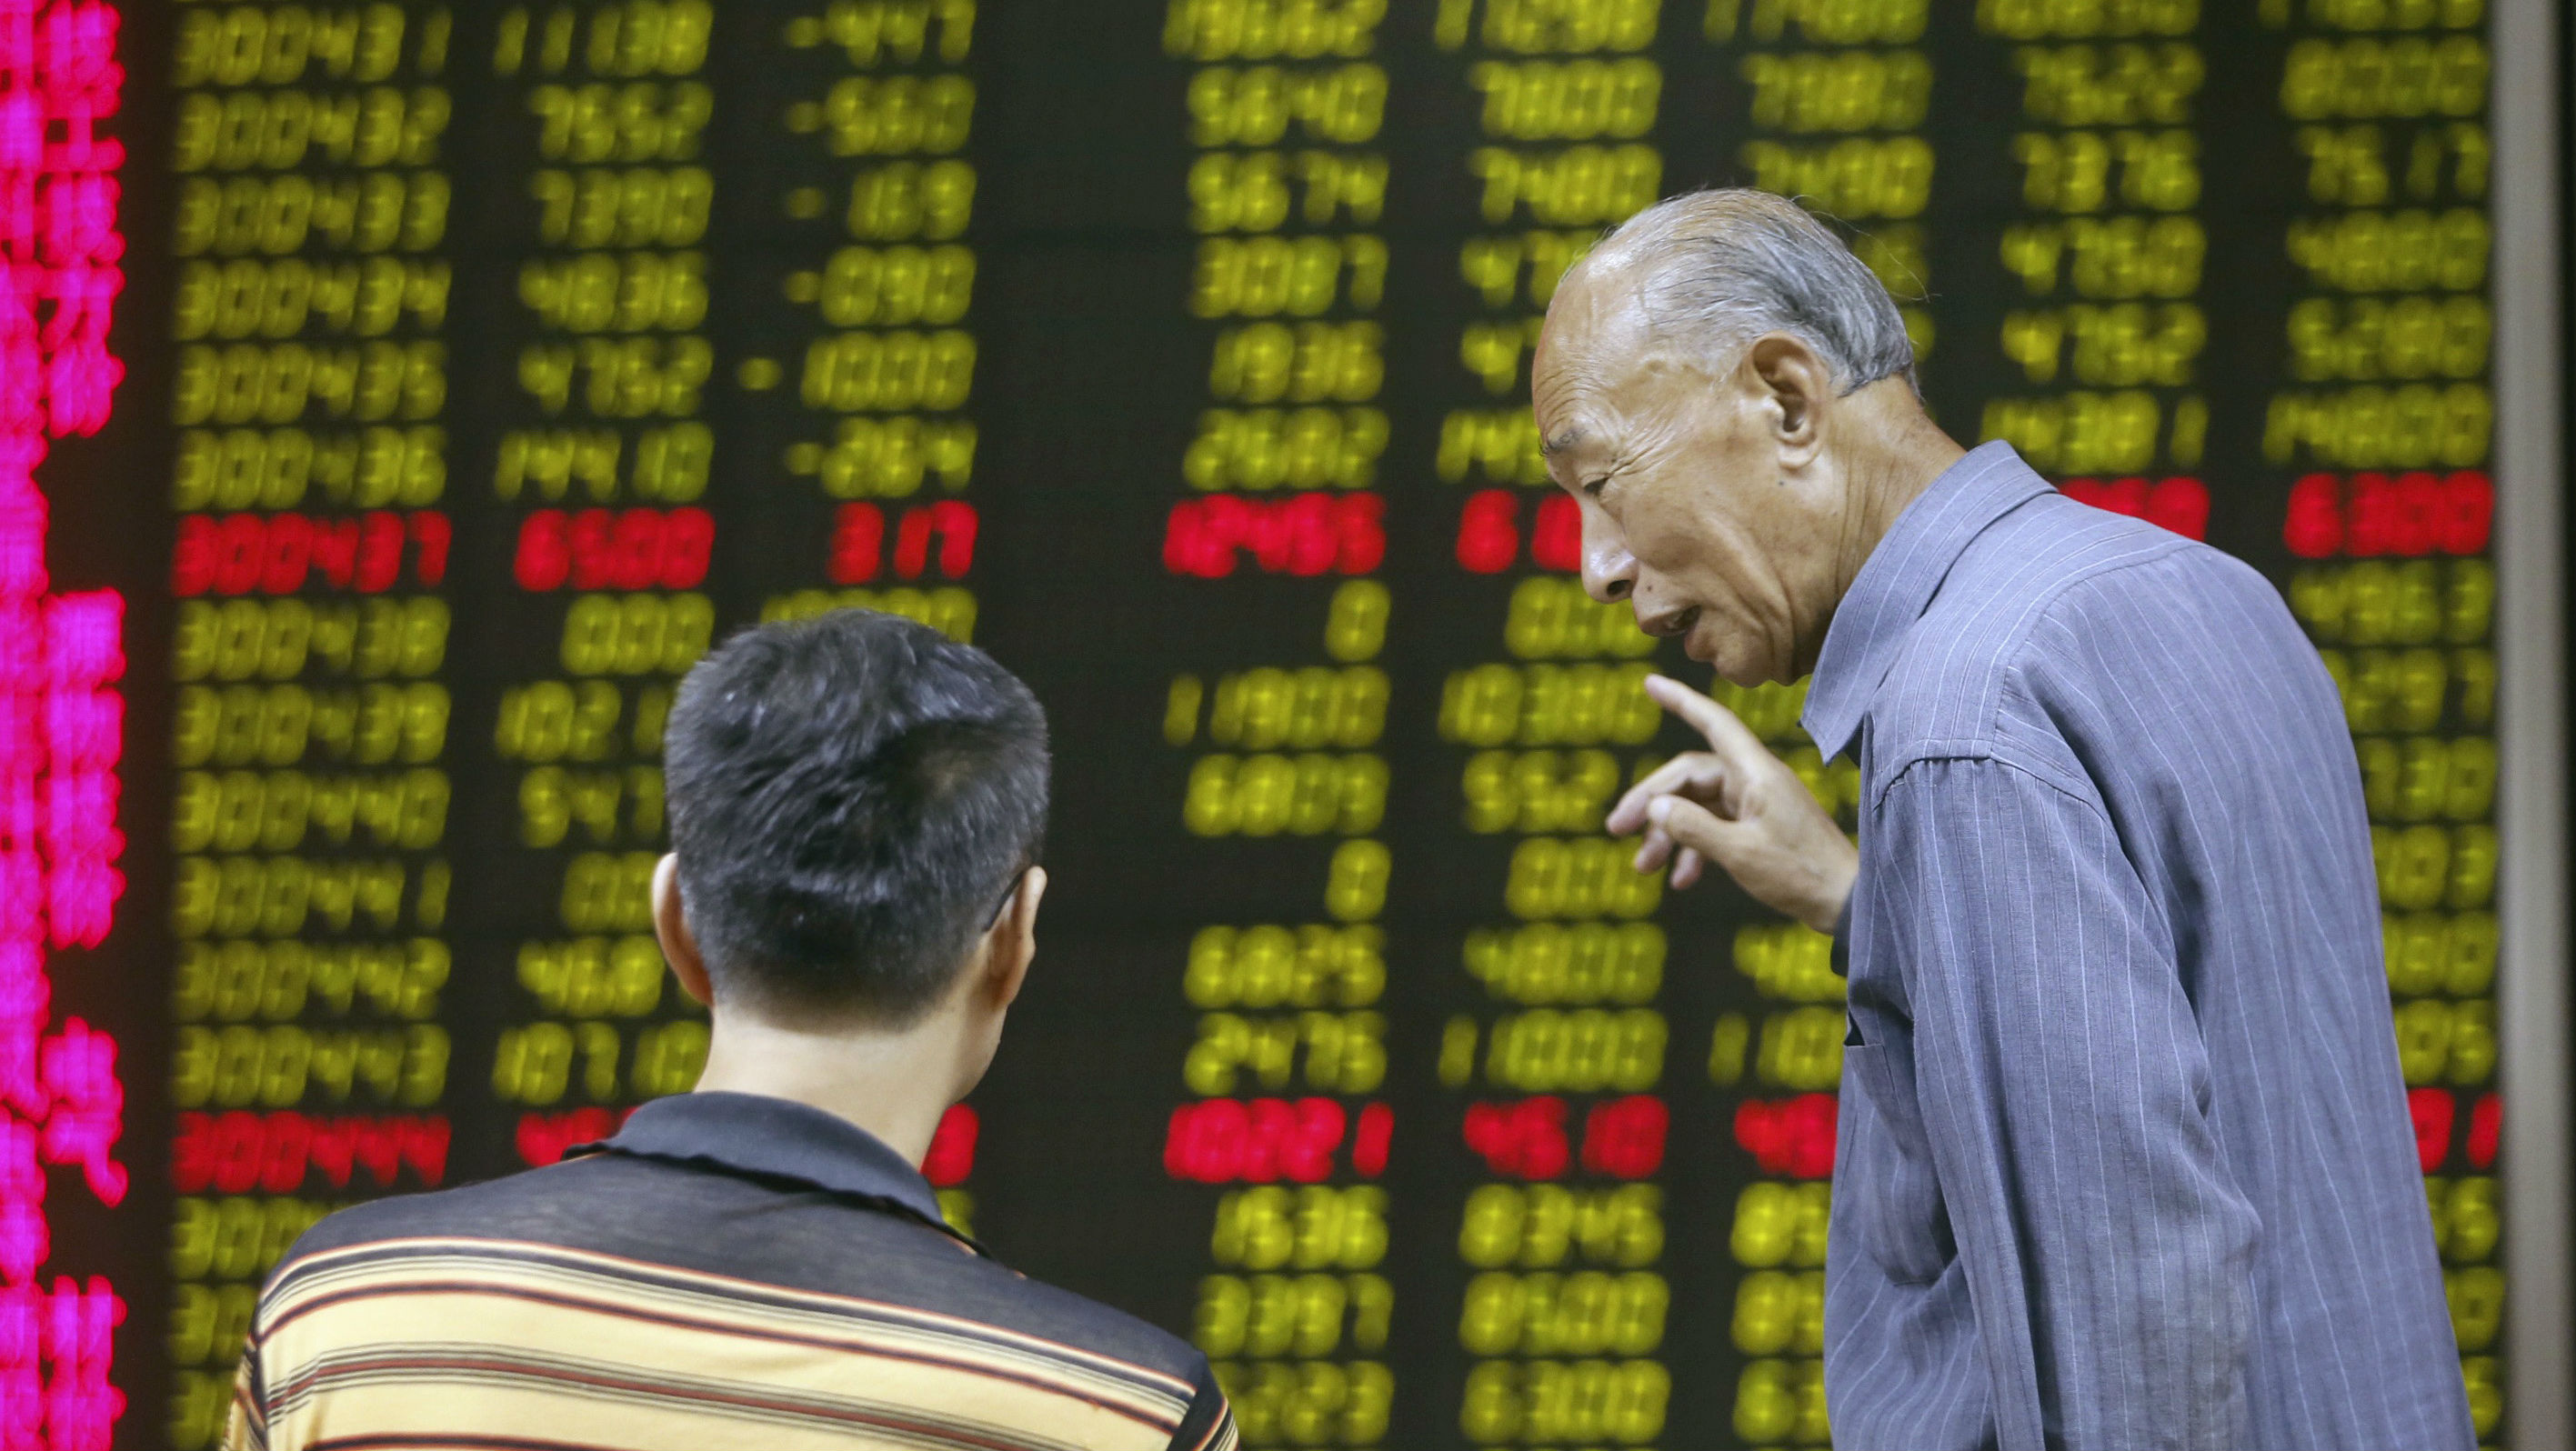 Investors talk in front of an electronic board showing stock information at a brokerage house in Beijing, China, August 21, 2015. China stocks closed down sharply on Friday, posting their worst weekly performance in over a month. REUTERS/Stringer CHINA OUT. NO COMMERCIAL OR EDITORIAL SALES IN CHINA